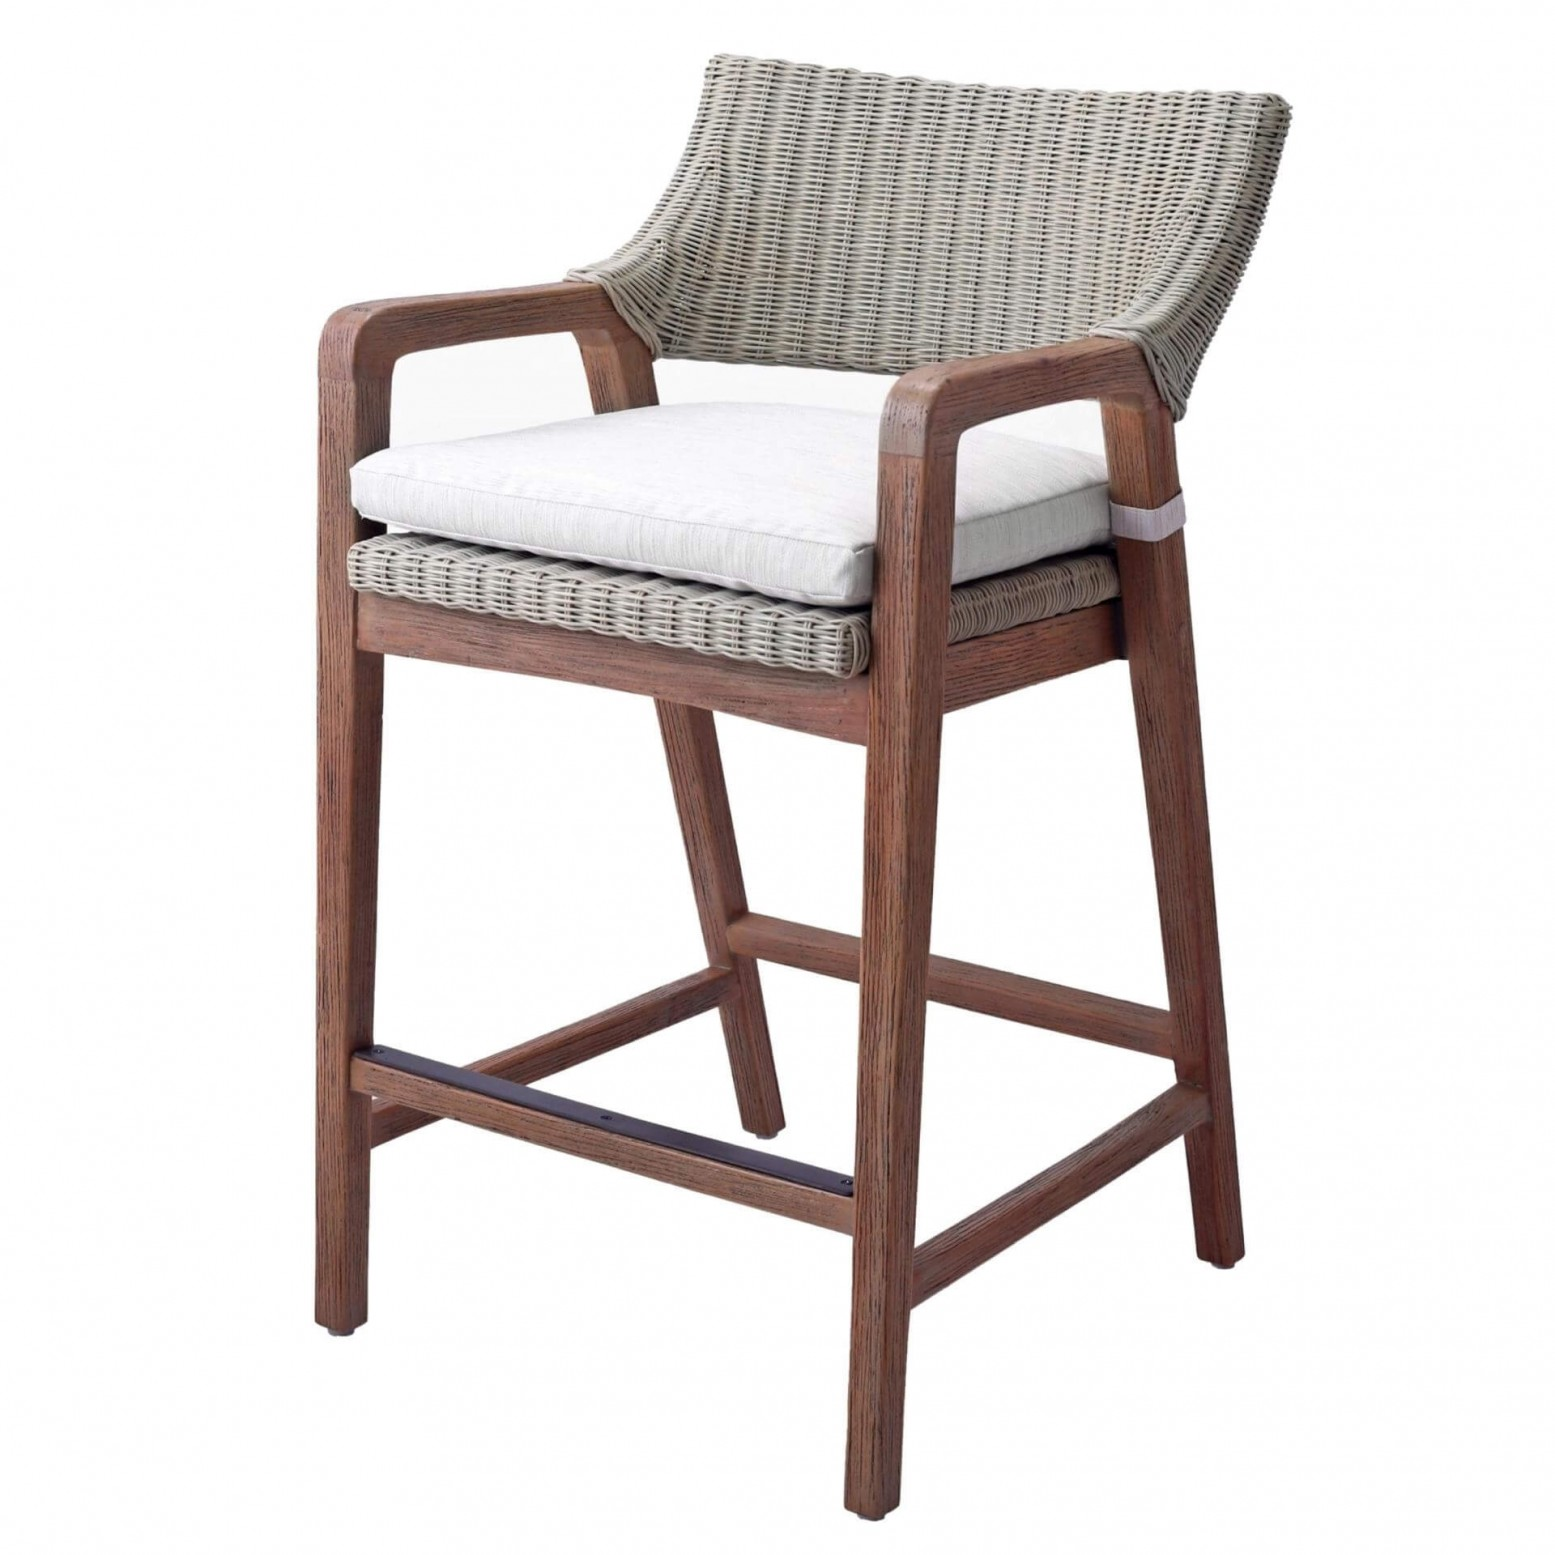 Prime Shiloh Fabric Rattan Wood Counter Stool Ibusinesslaw Wood Chair Design Ideas Ibusinesslaworg